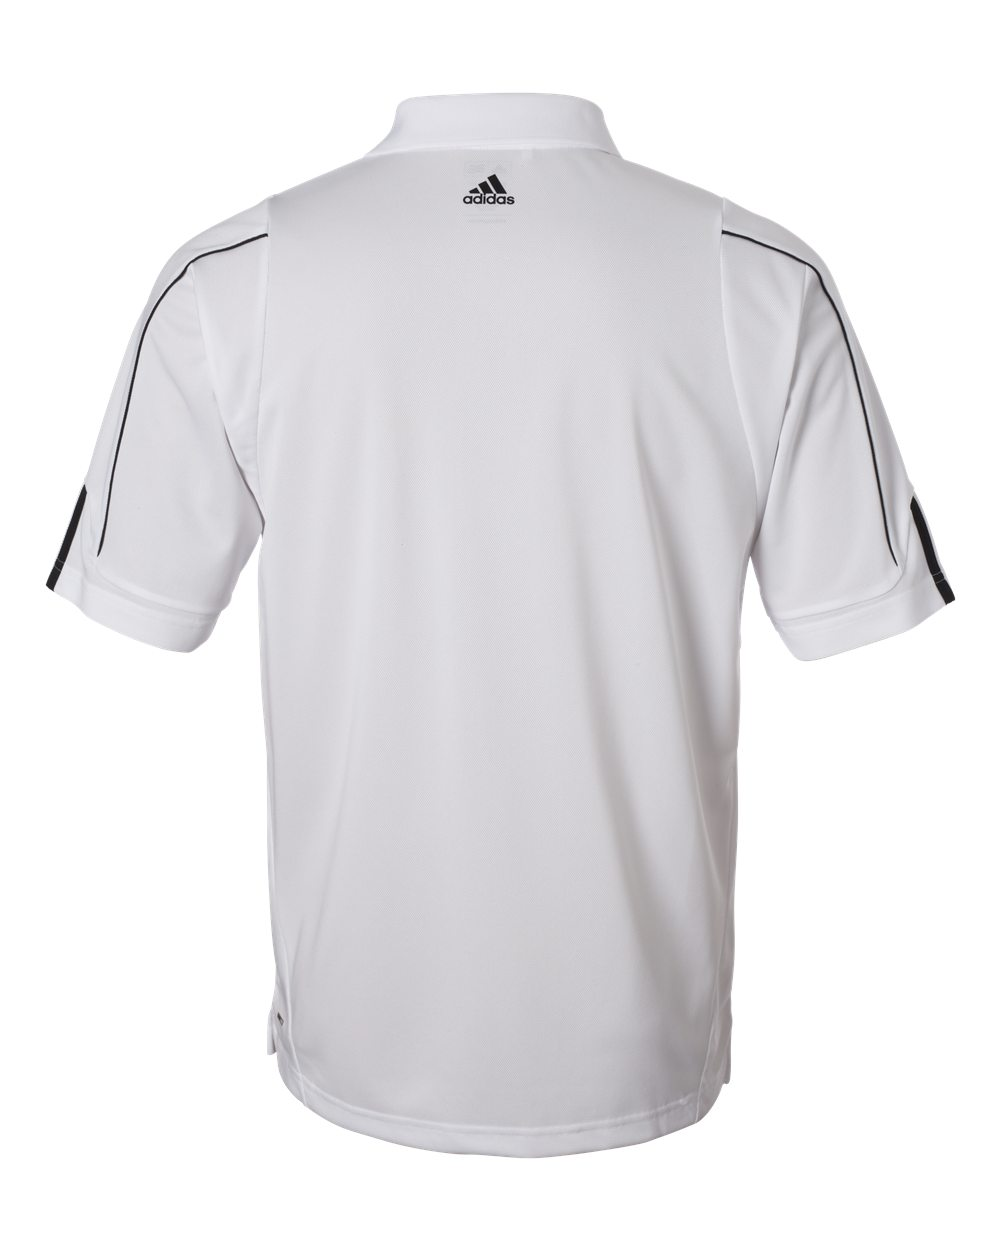 Adidas-Mens-Climalite-3-Stripes-Cuff-Sport-Shirt-A76-up-to-4XL miniature 22